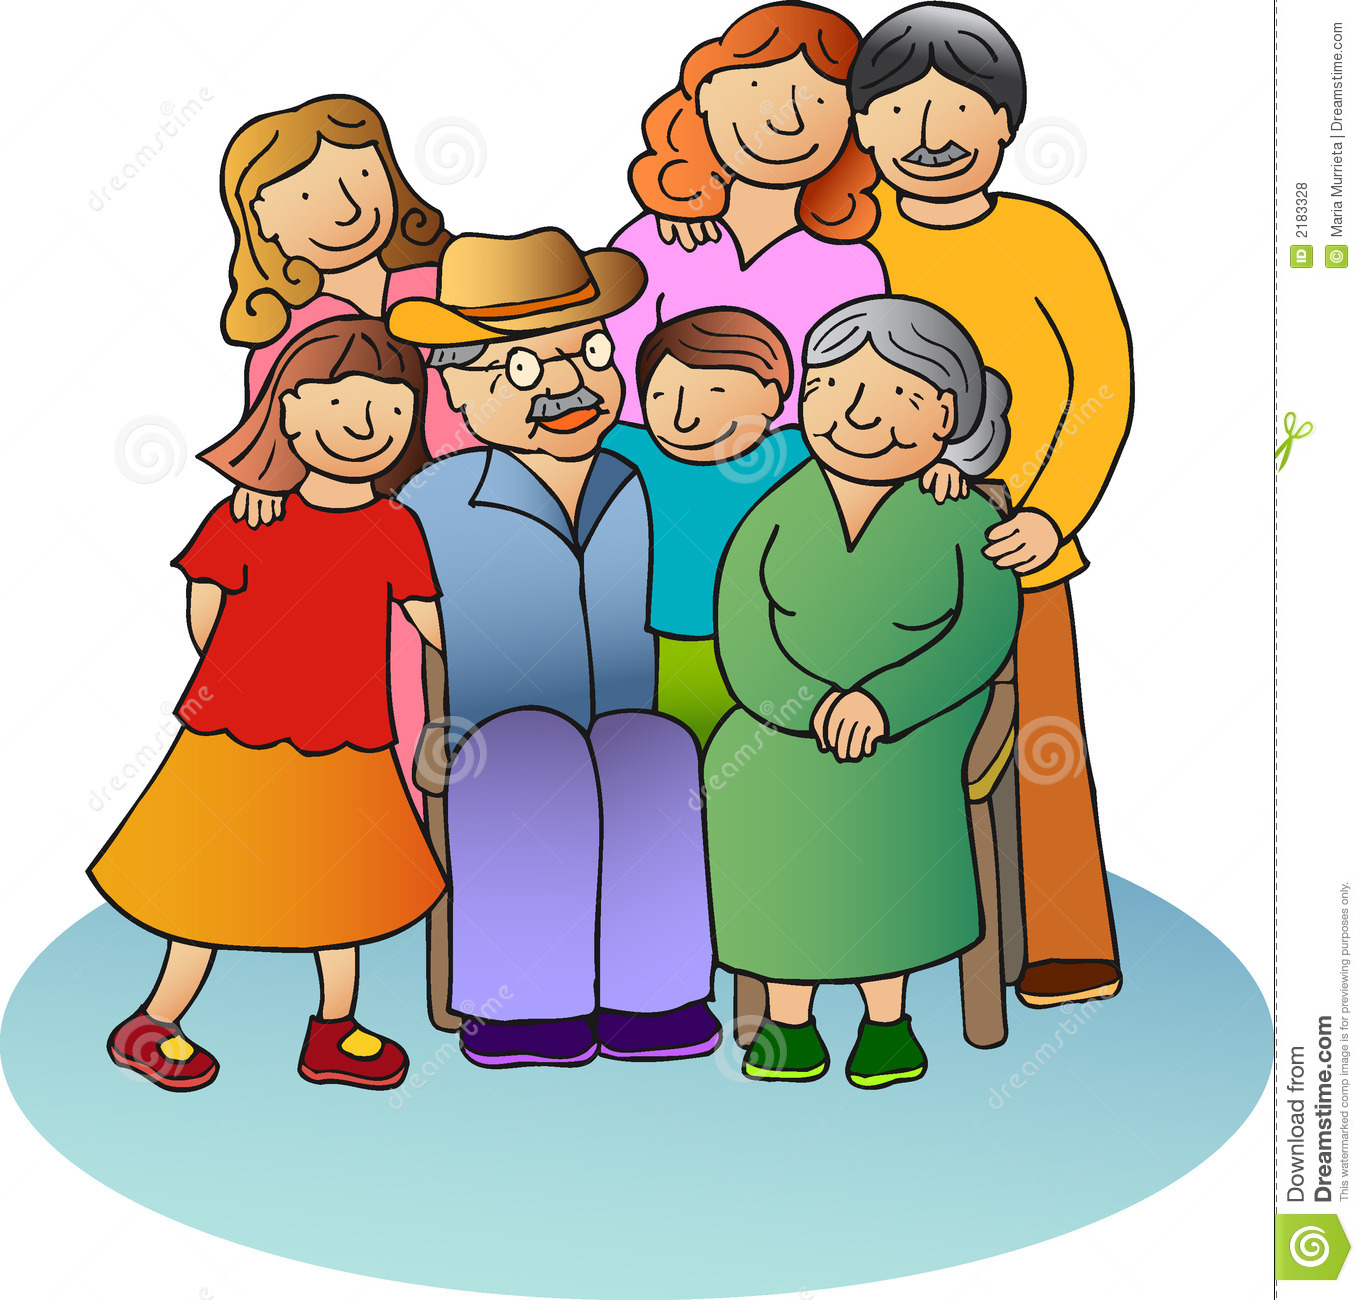 7 clipart family. People daughters station